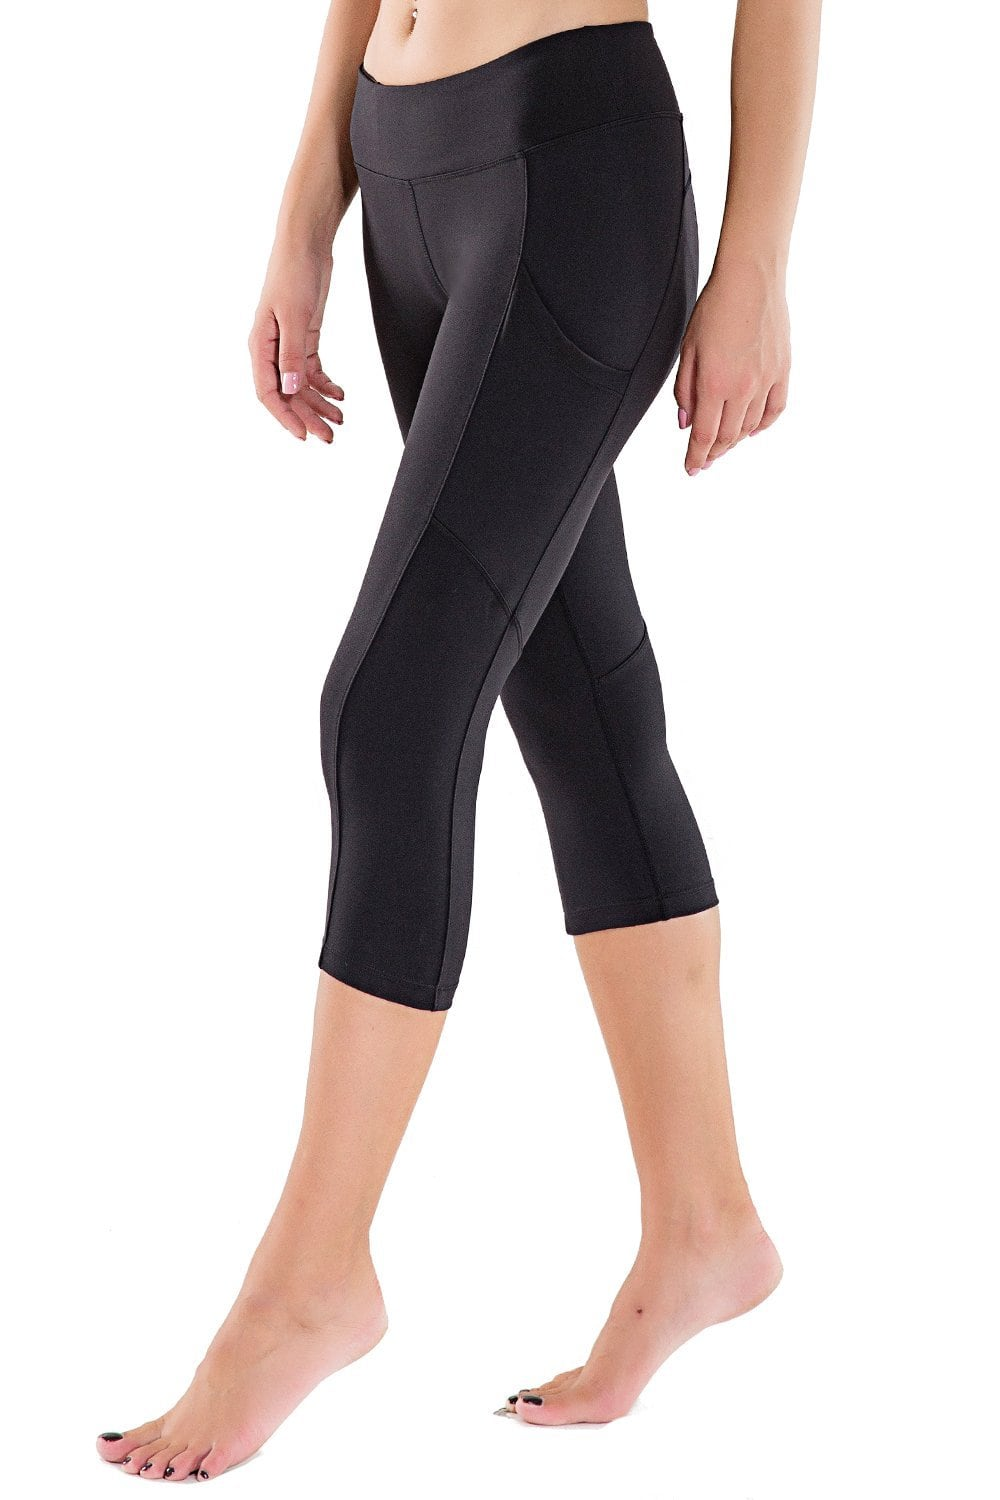 Women's Workout Yoga Capris Running Yoga Pants with Side Pockets  $10.2 AC FS w/Amazon Prime